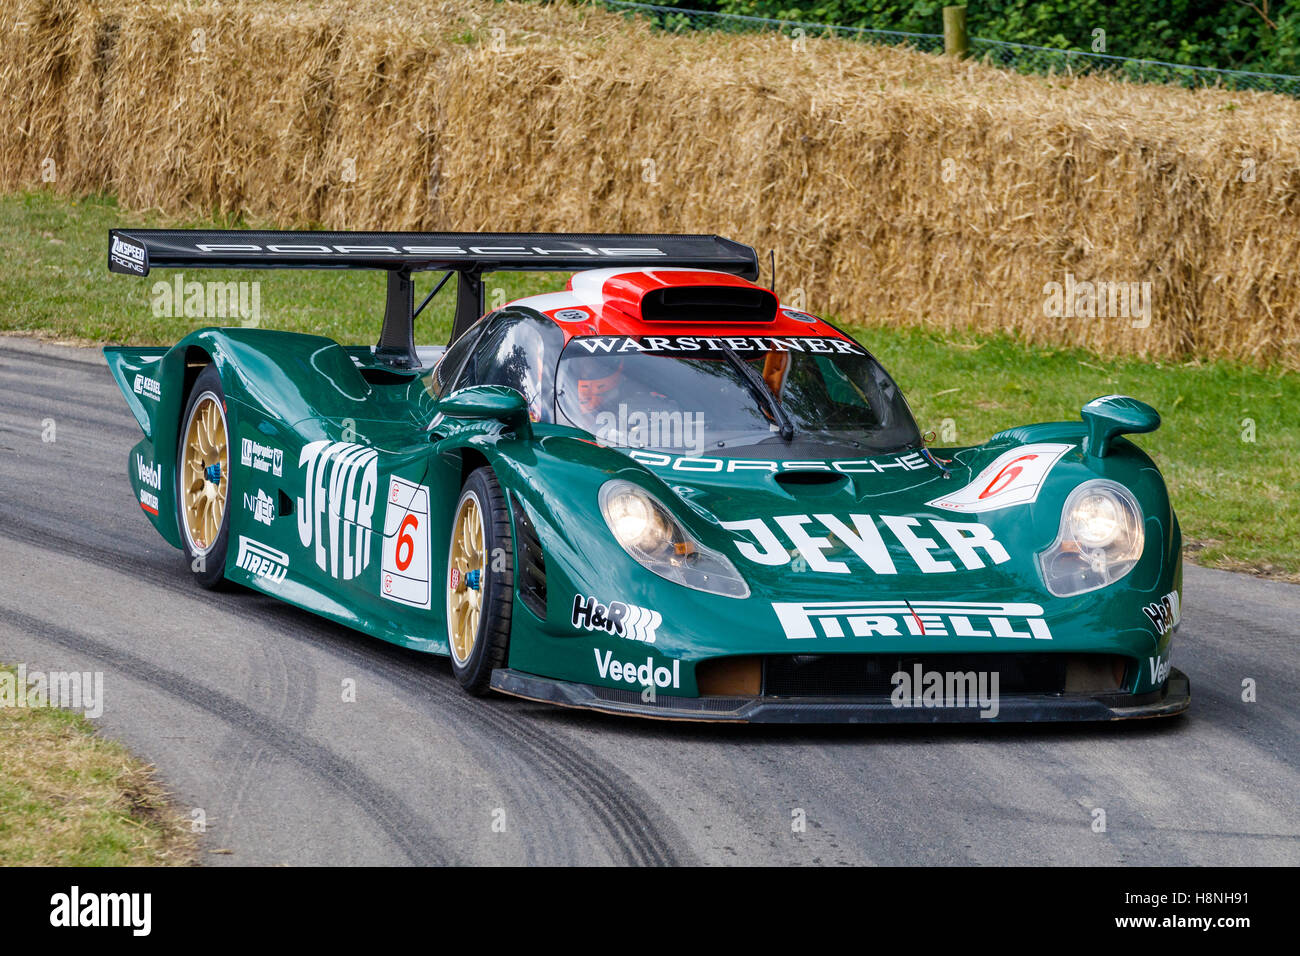 1998 porsche 911 gt1 98 le mans racer with driver nick trott at the stock photo royalty free. Black Bedroom Furniture Sets. Home Design Ideas